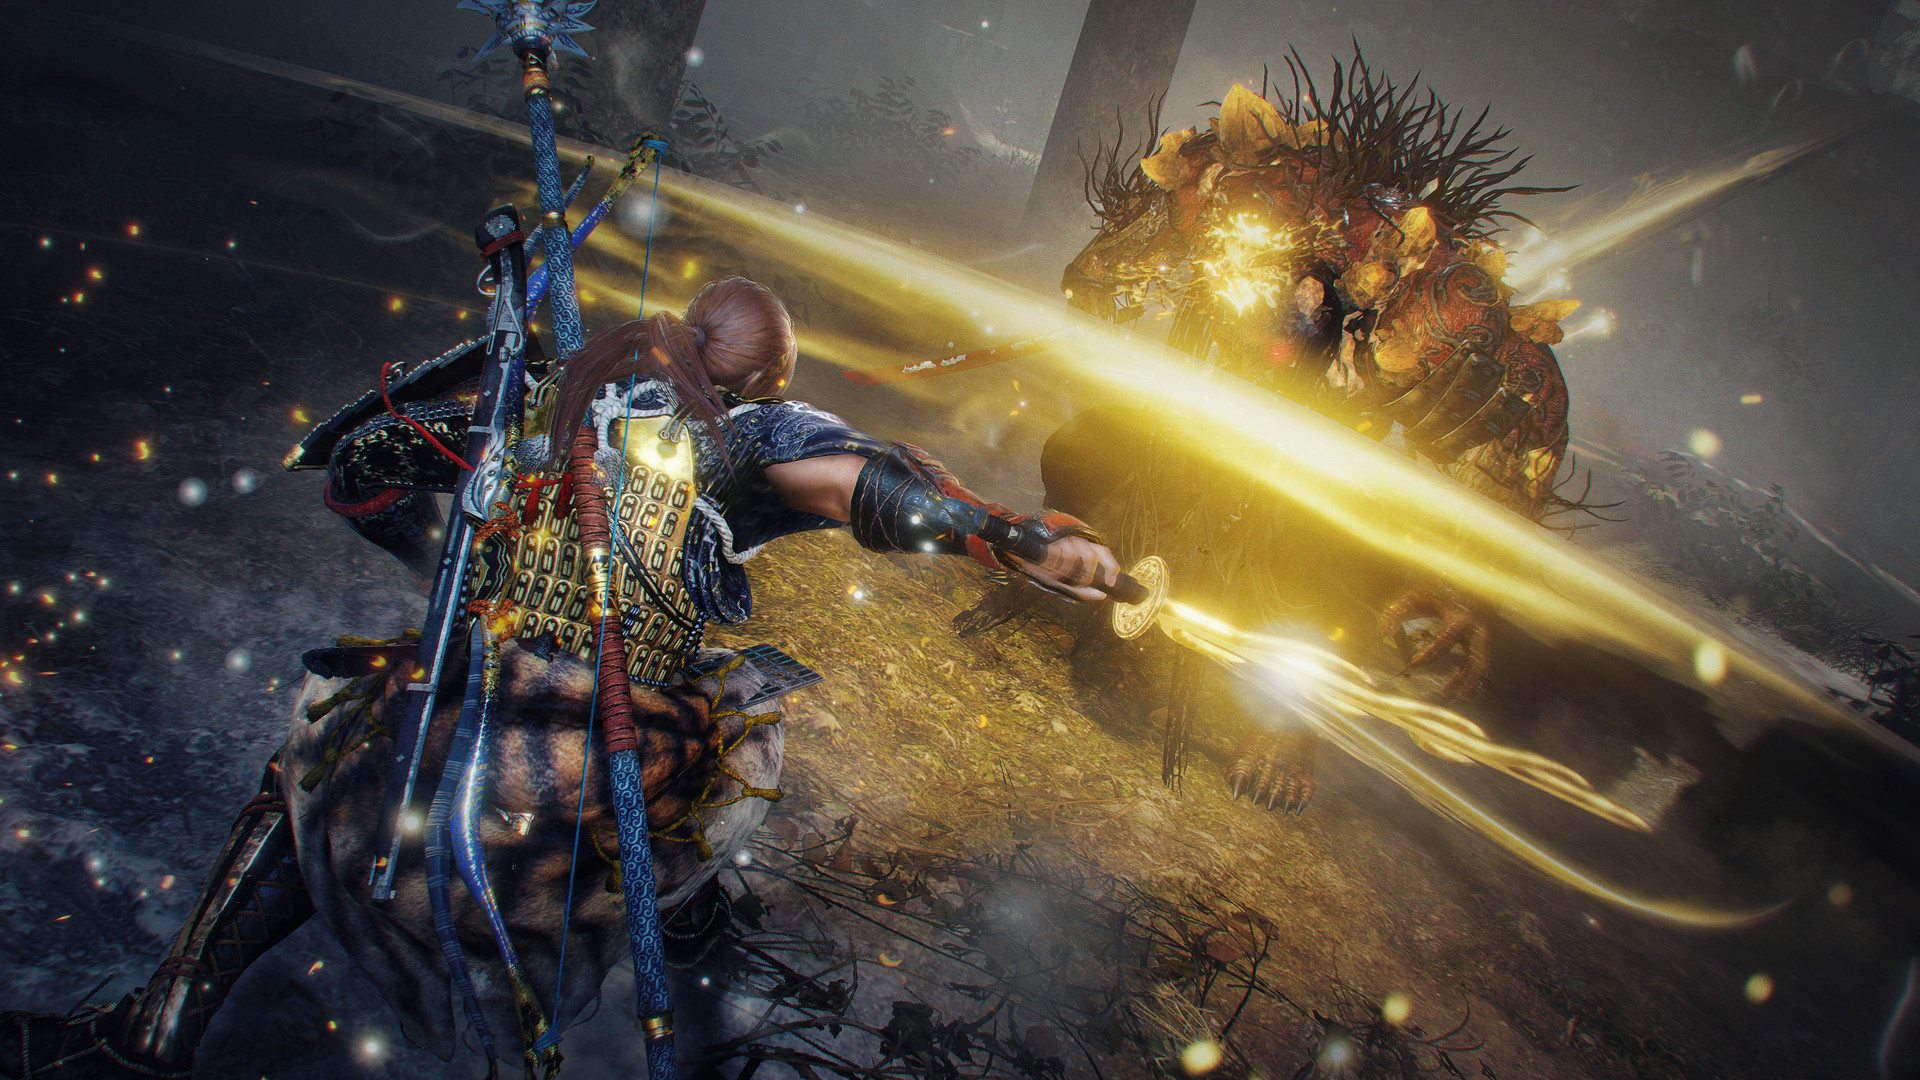 Nioh 2 players suffering frame rate and controller issues on Steam